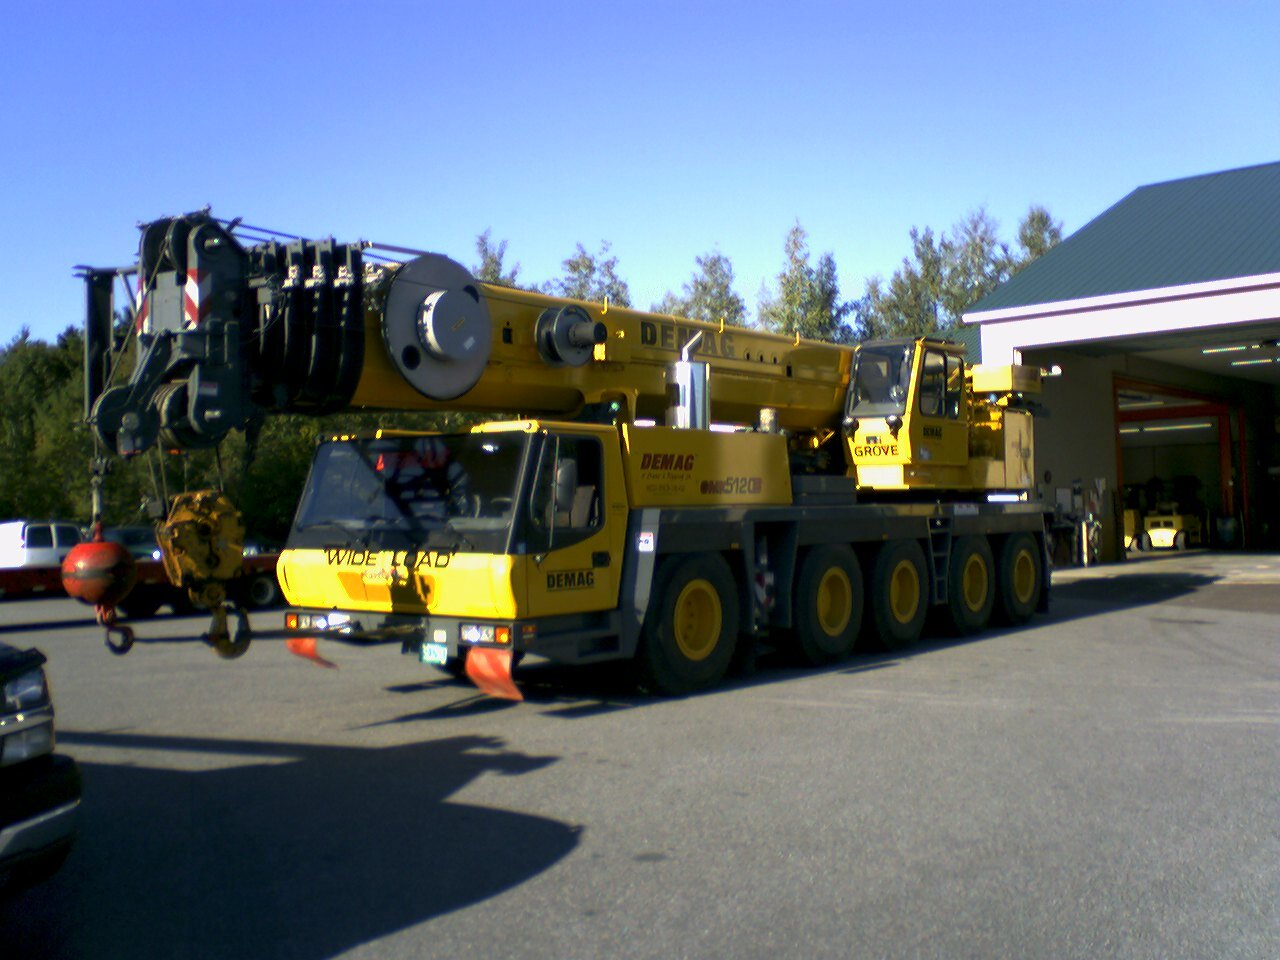 Setting up Demag Riggers' Grove GMK5120 for its inspection